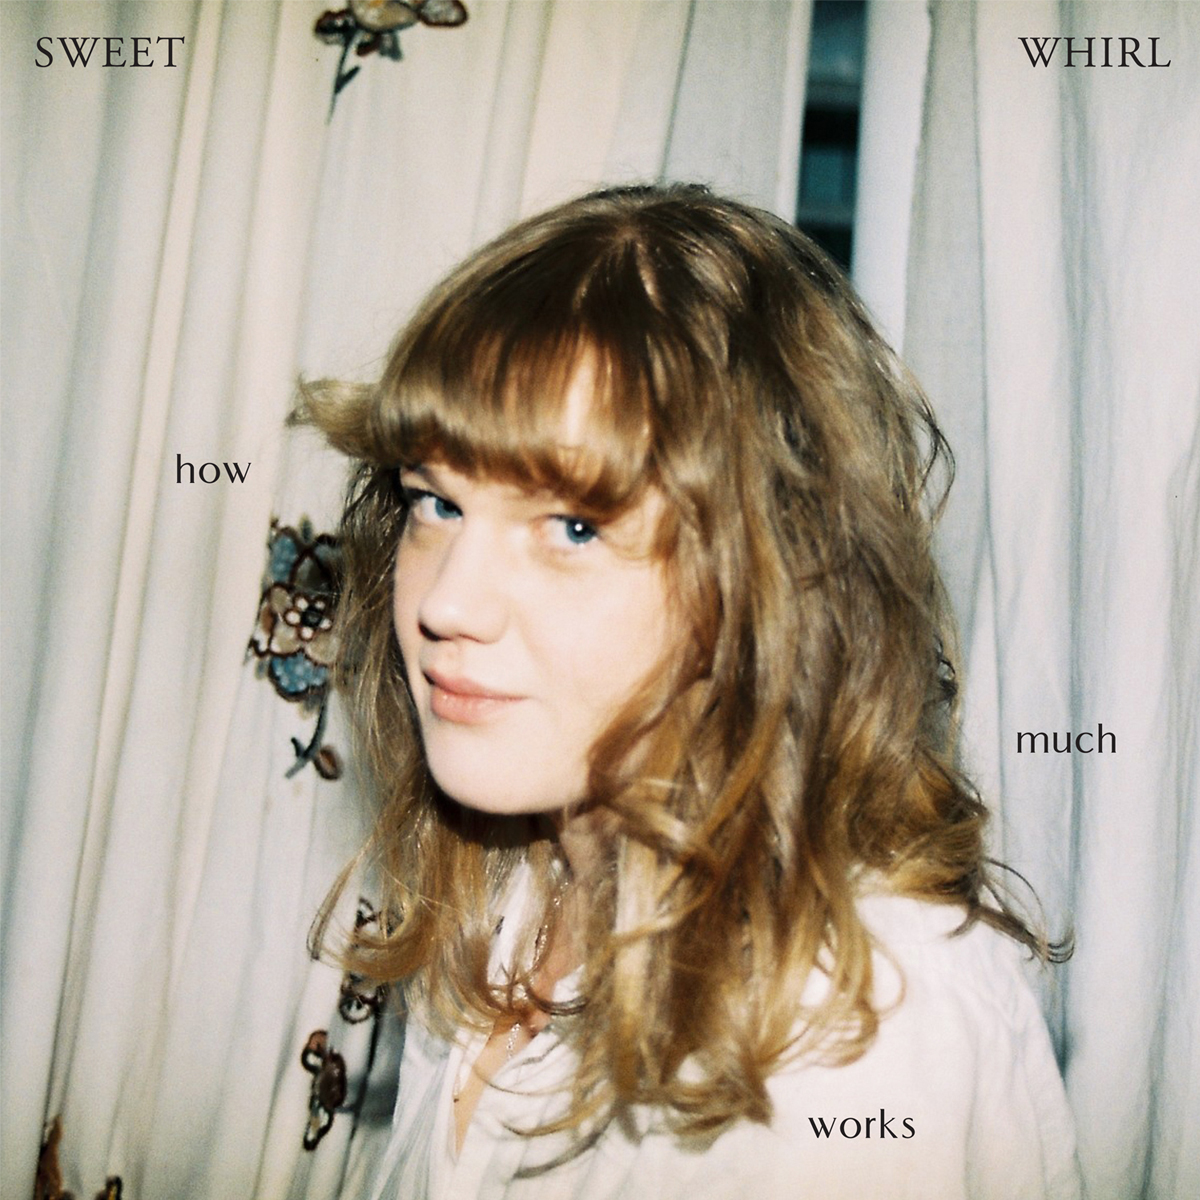 Sweet Whirl album art How Much Works